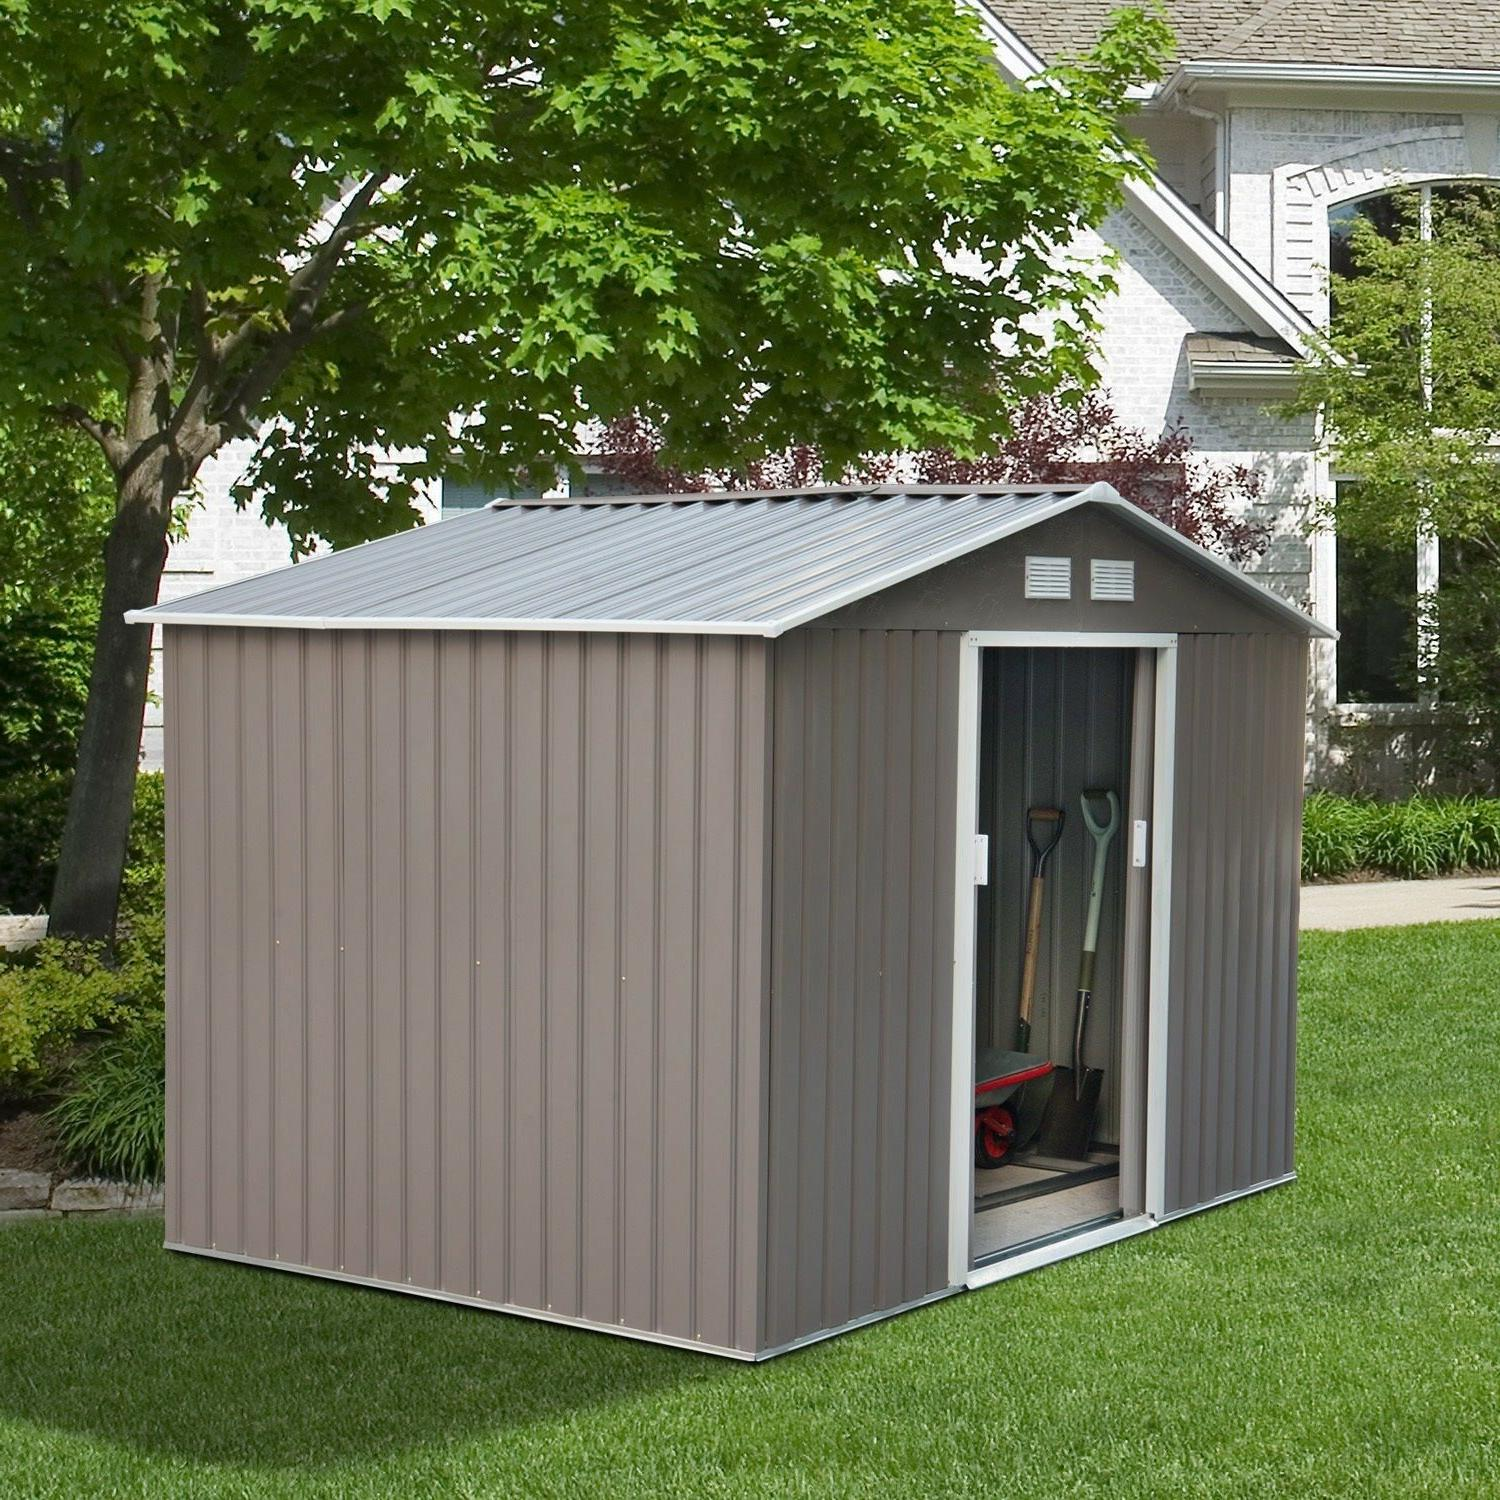 steel outdoor storage shed garden backyard toolshed